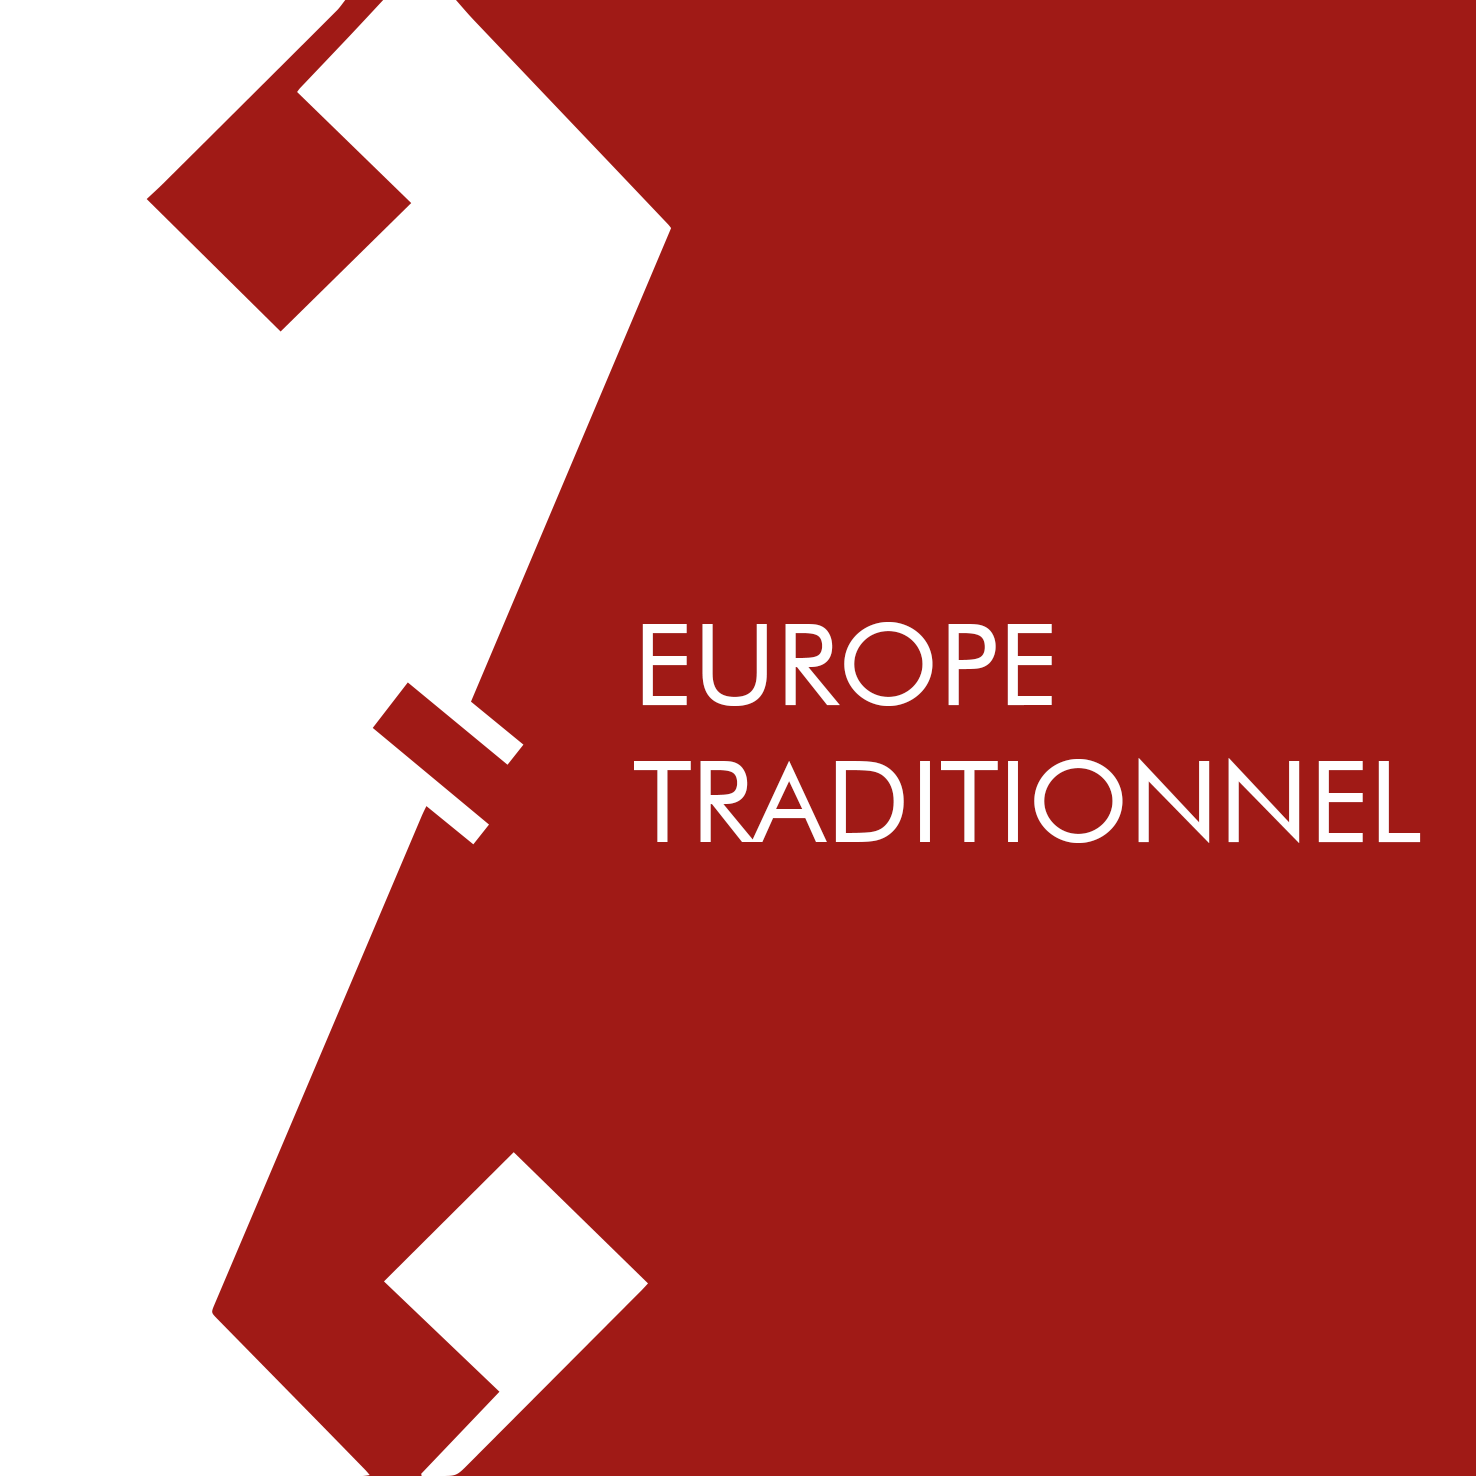 EUROPE - TRADITIONNEL